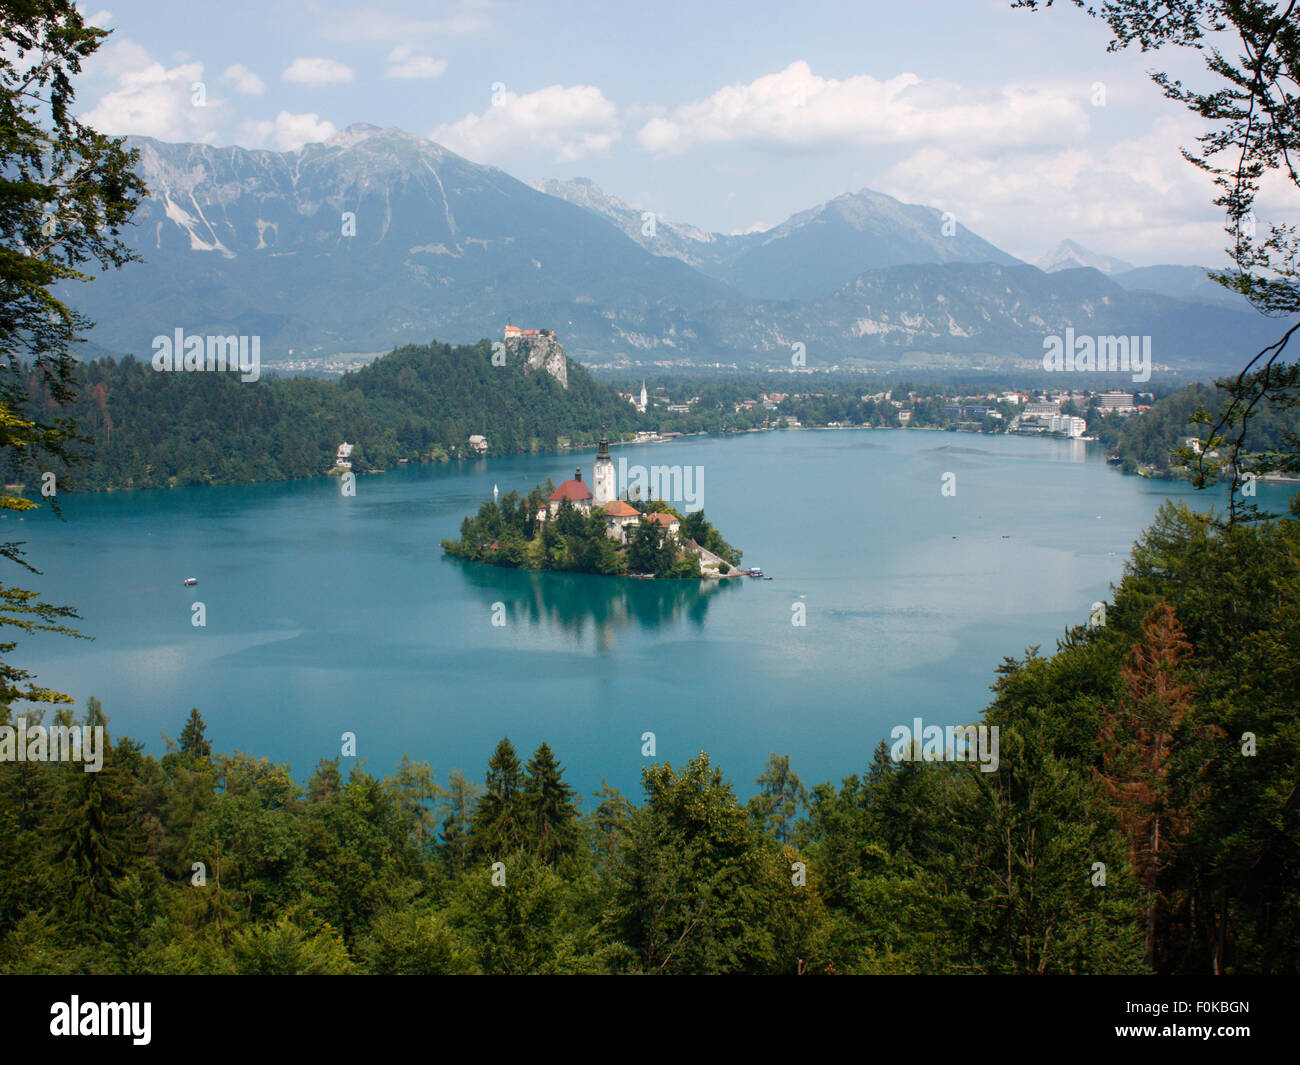 Travel and tourism in Europe. Lake Bled, Slovenia - Stock Image